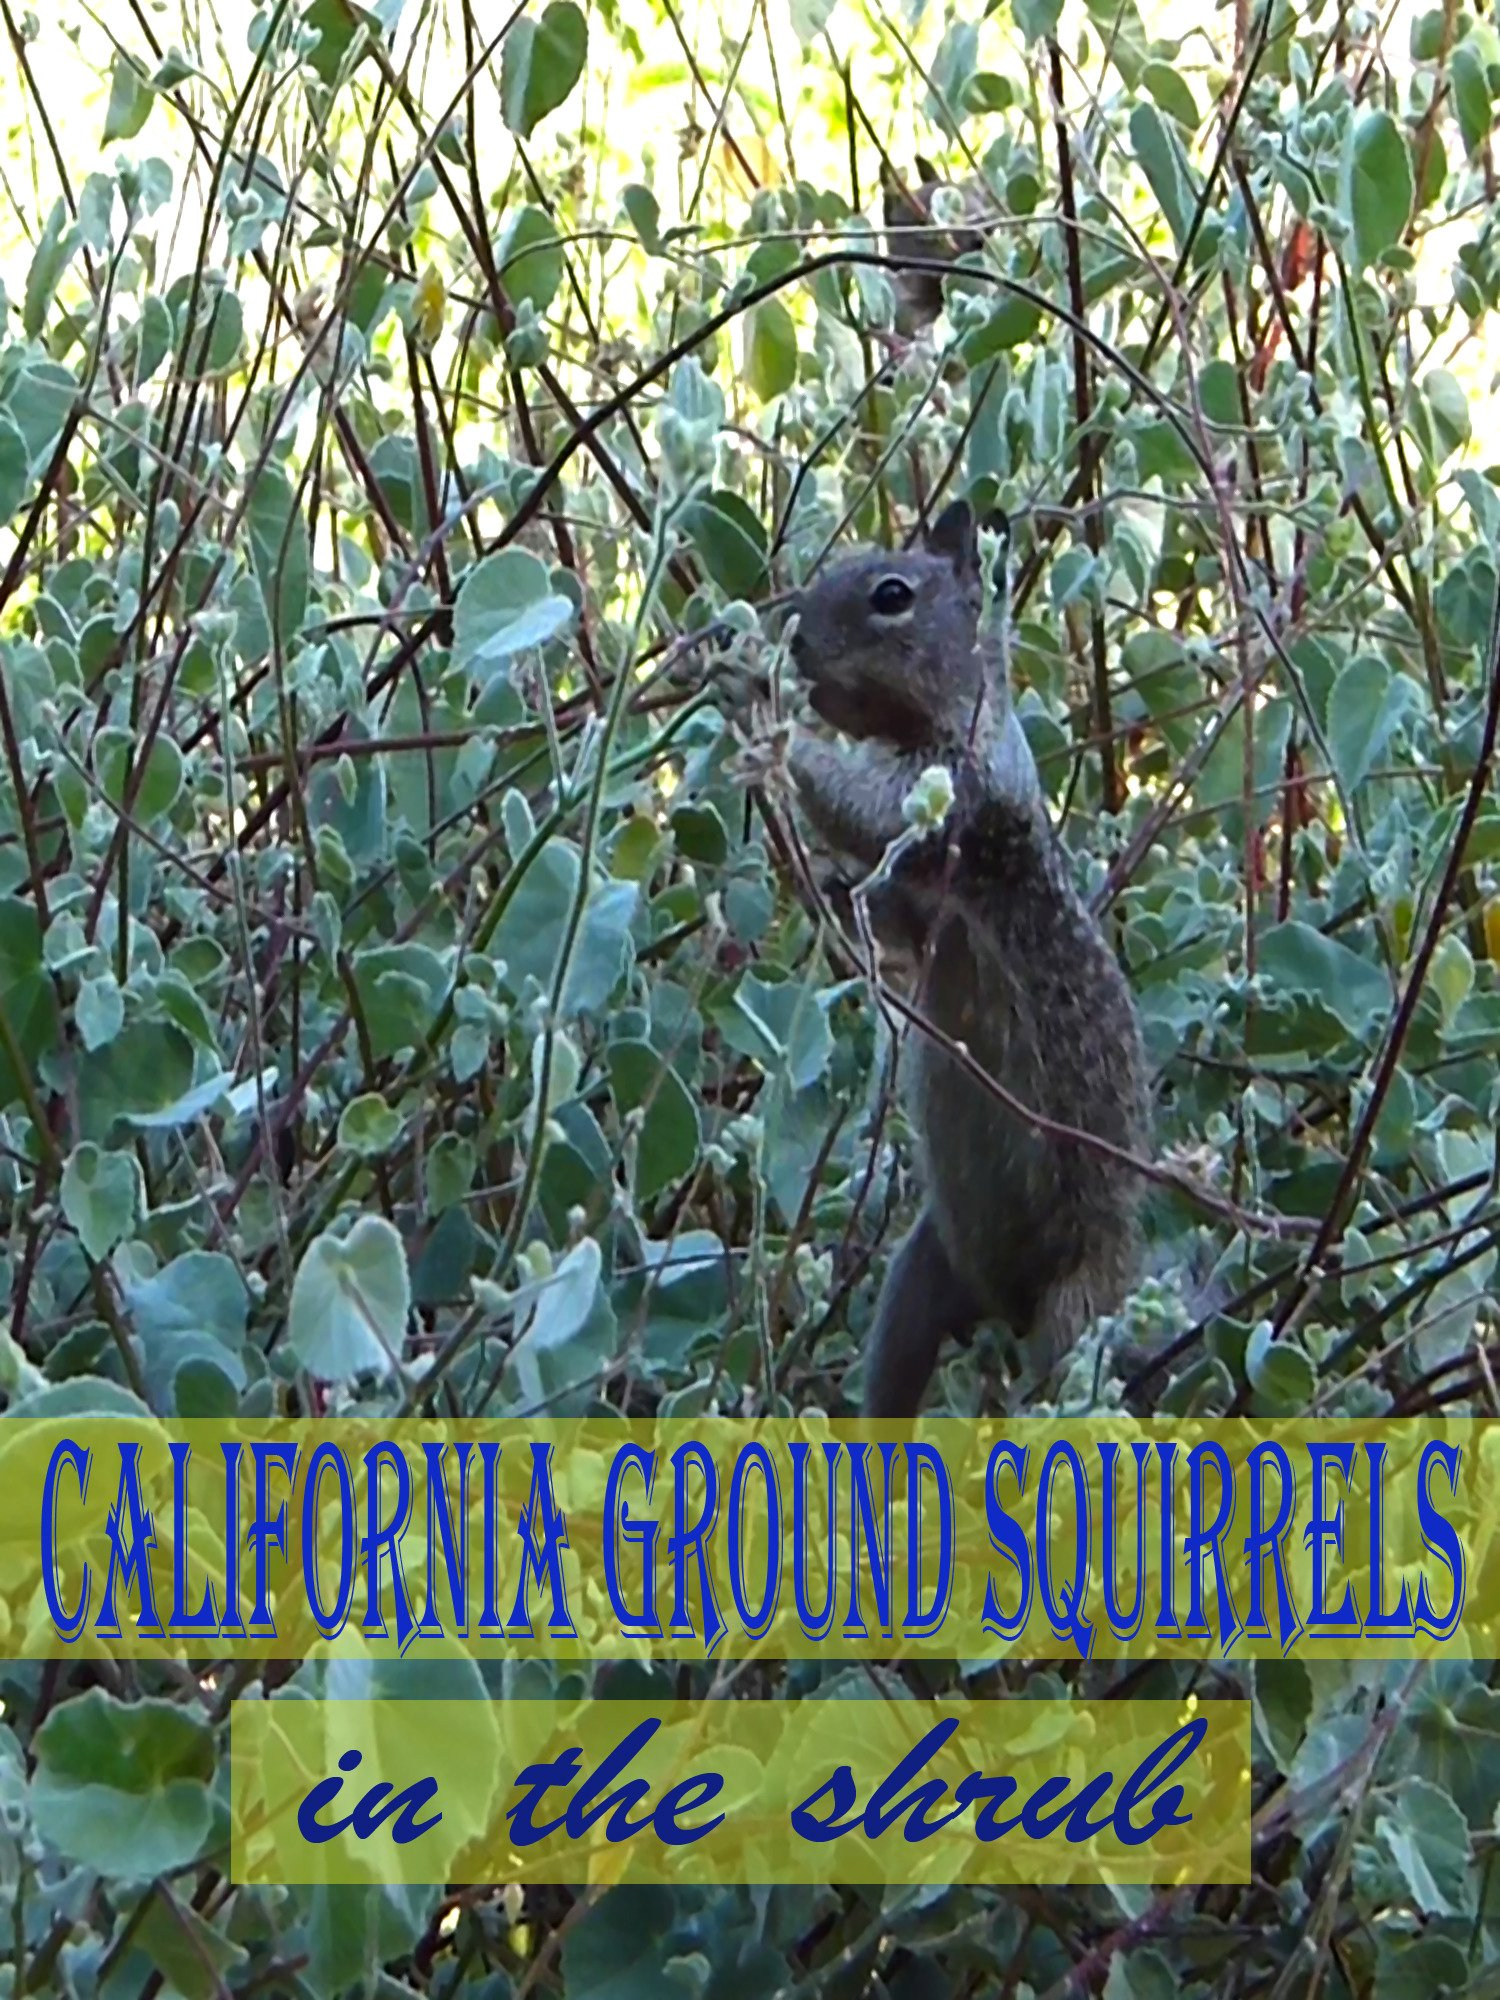 Clip: California Ground Squirrels in the shrub